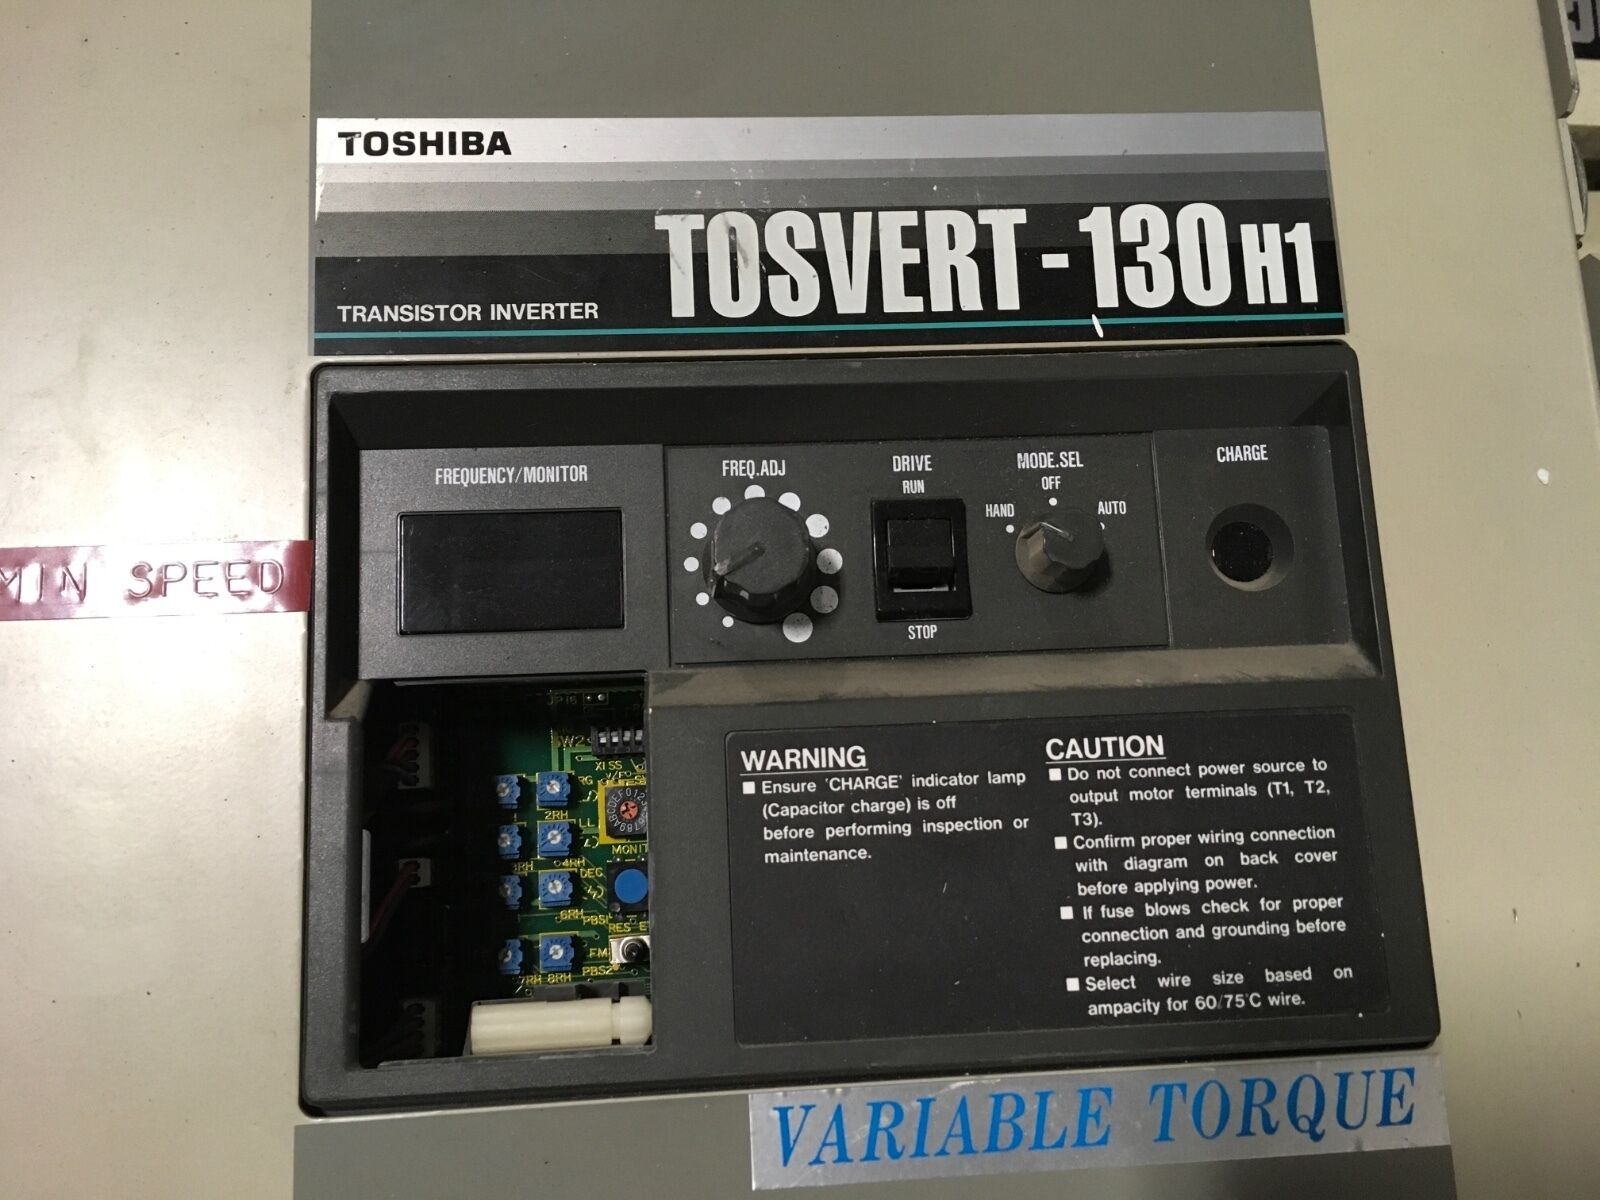 hight resolution of toshiba tosvert 130h1 3 hp transistor inverter motor drive cnc machine tools for sale online ebay